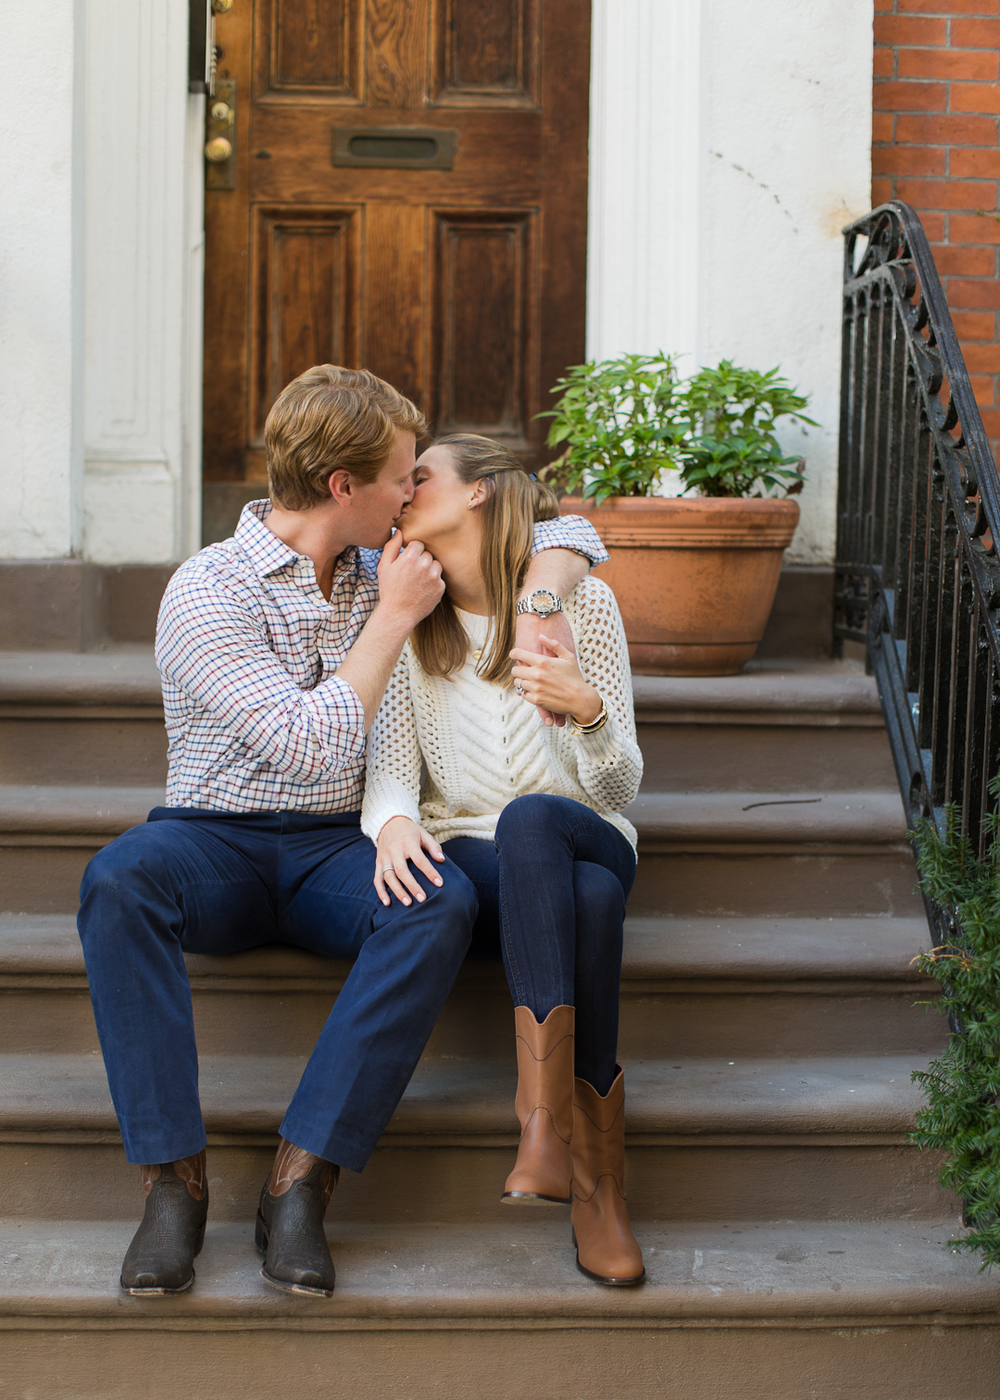 Melissa Kruse Photography - Megan & Tyler West Village Engagement Photos-51.jpg